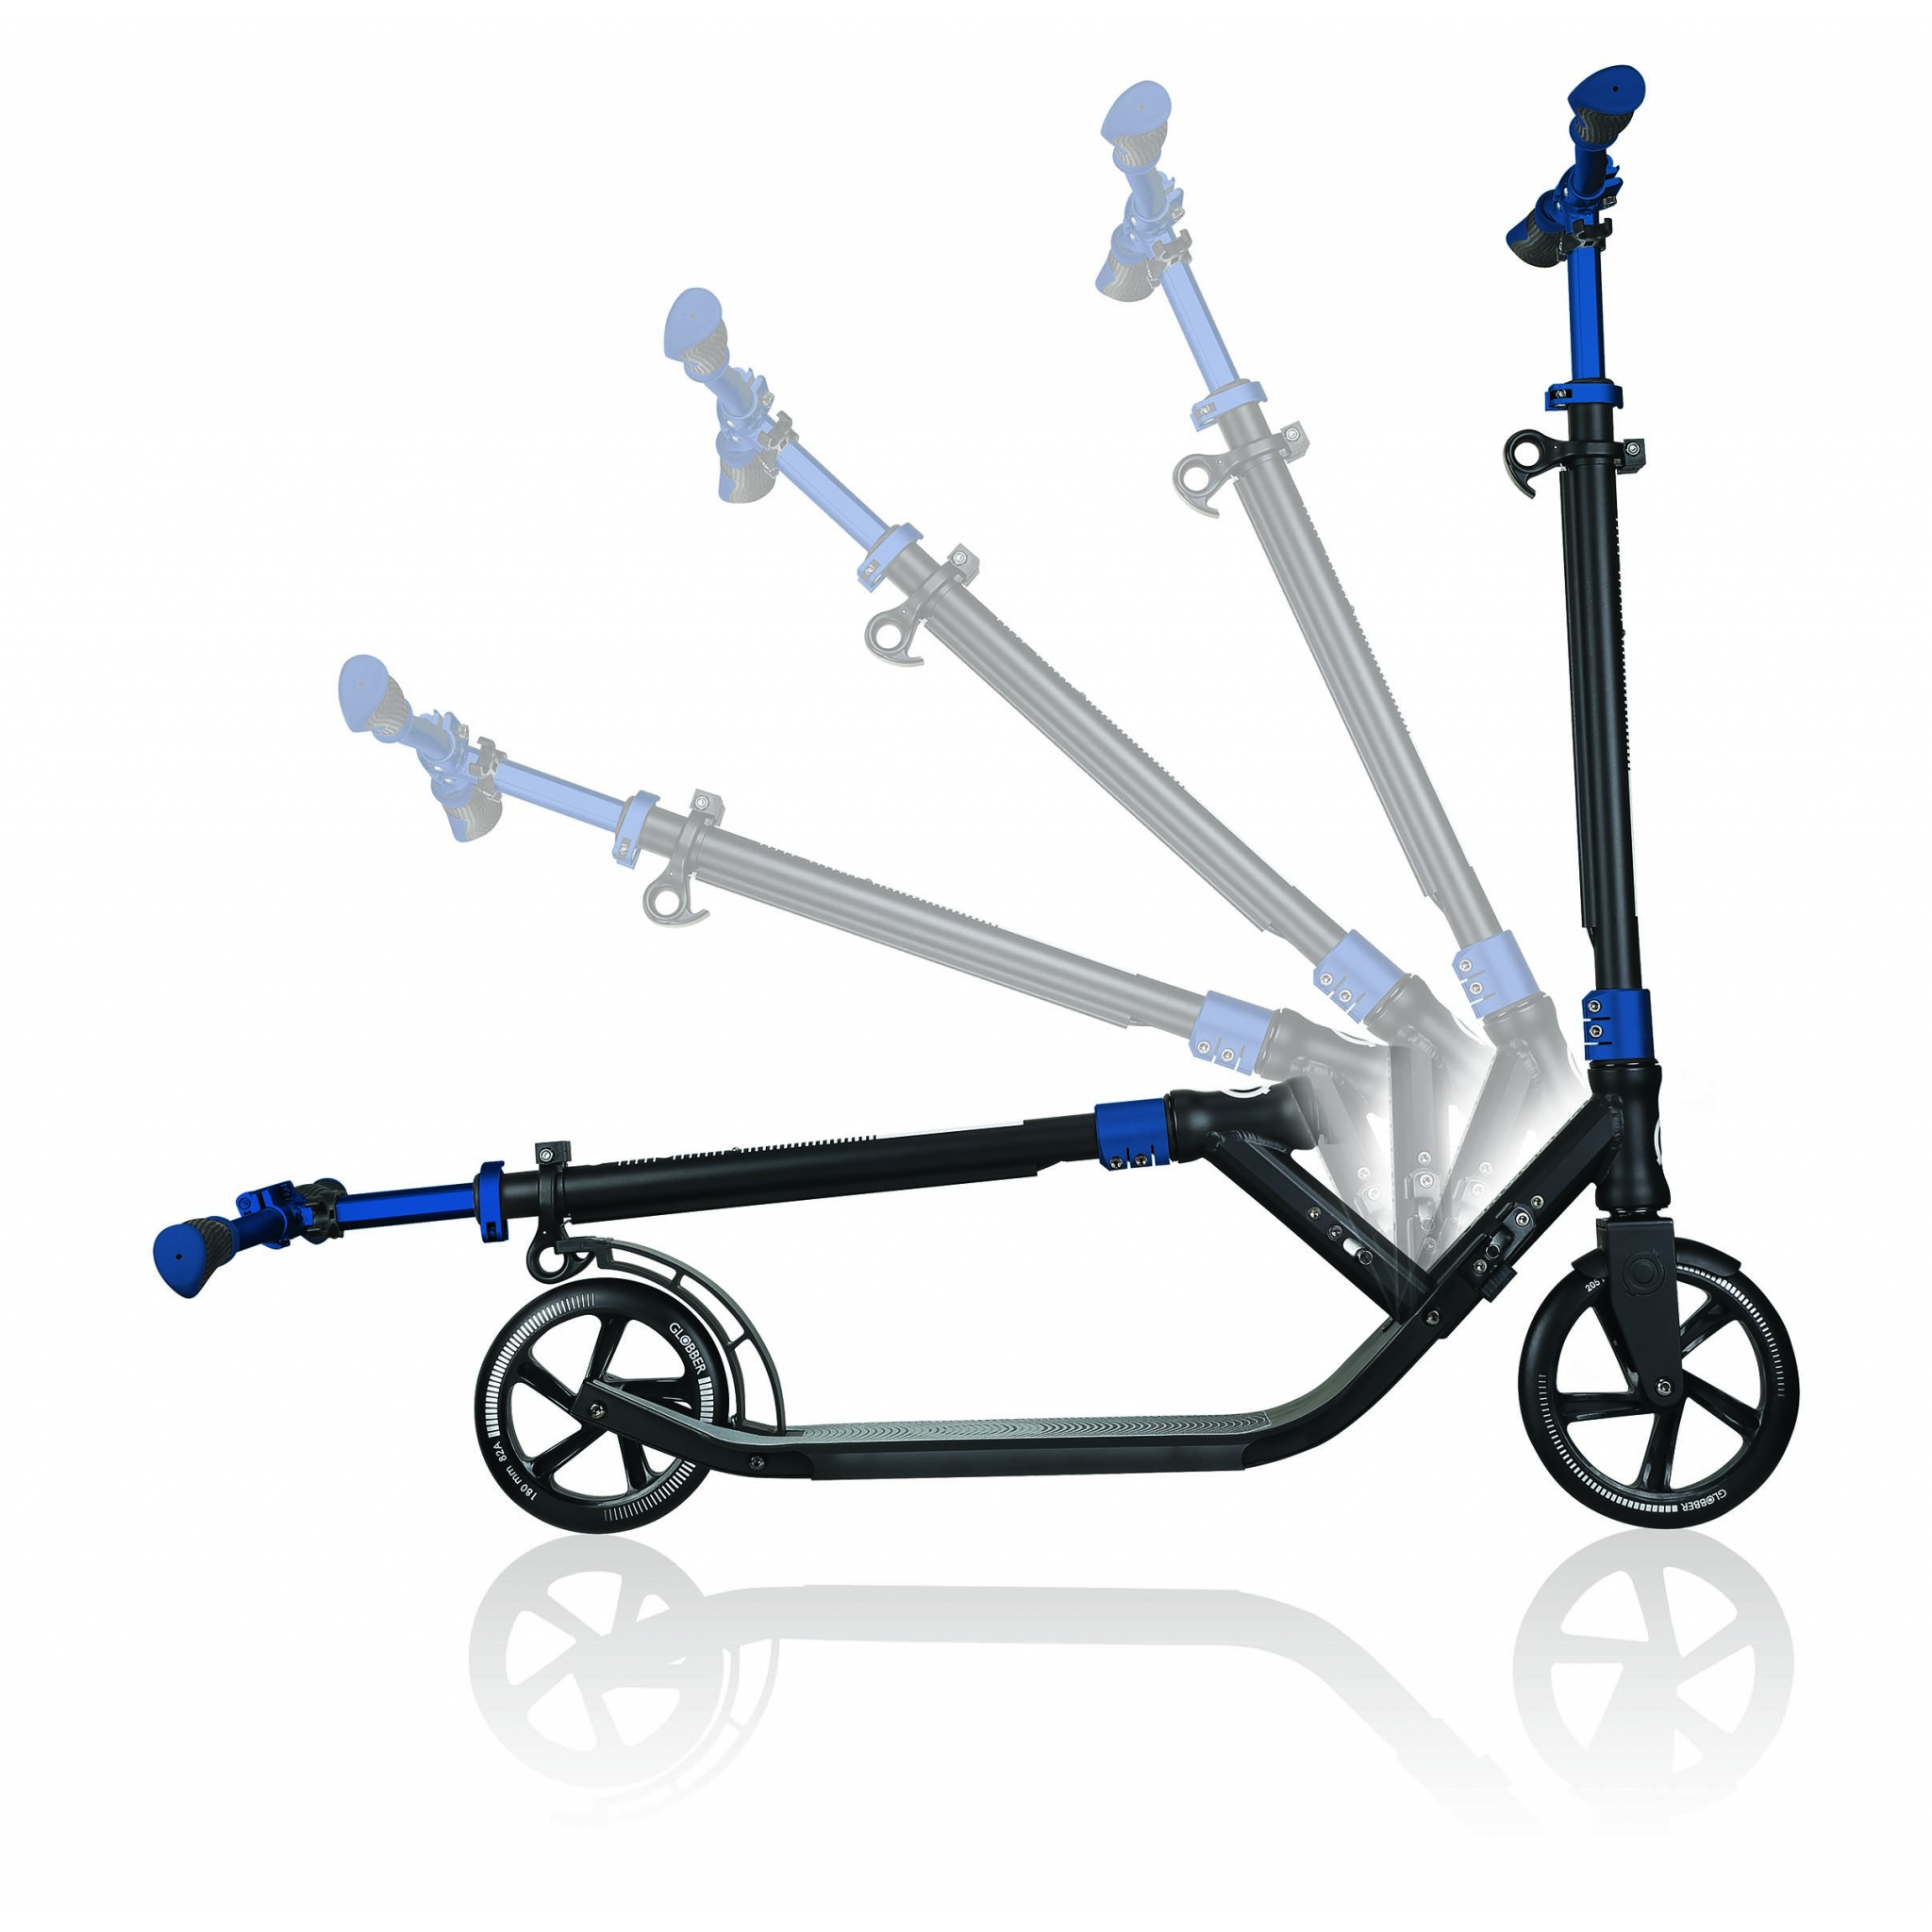 Globber-ONE-NL-205-180-DUO-2-wheel-foldable-scooter-for-adults-1-second-fold-up-scooter-cobalt-blue